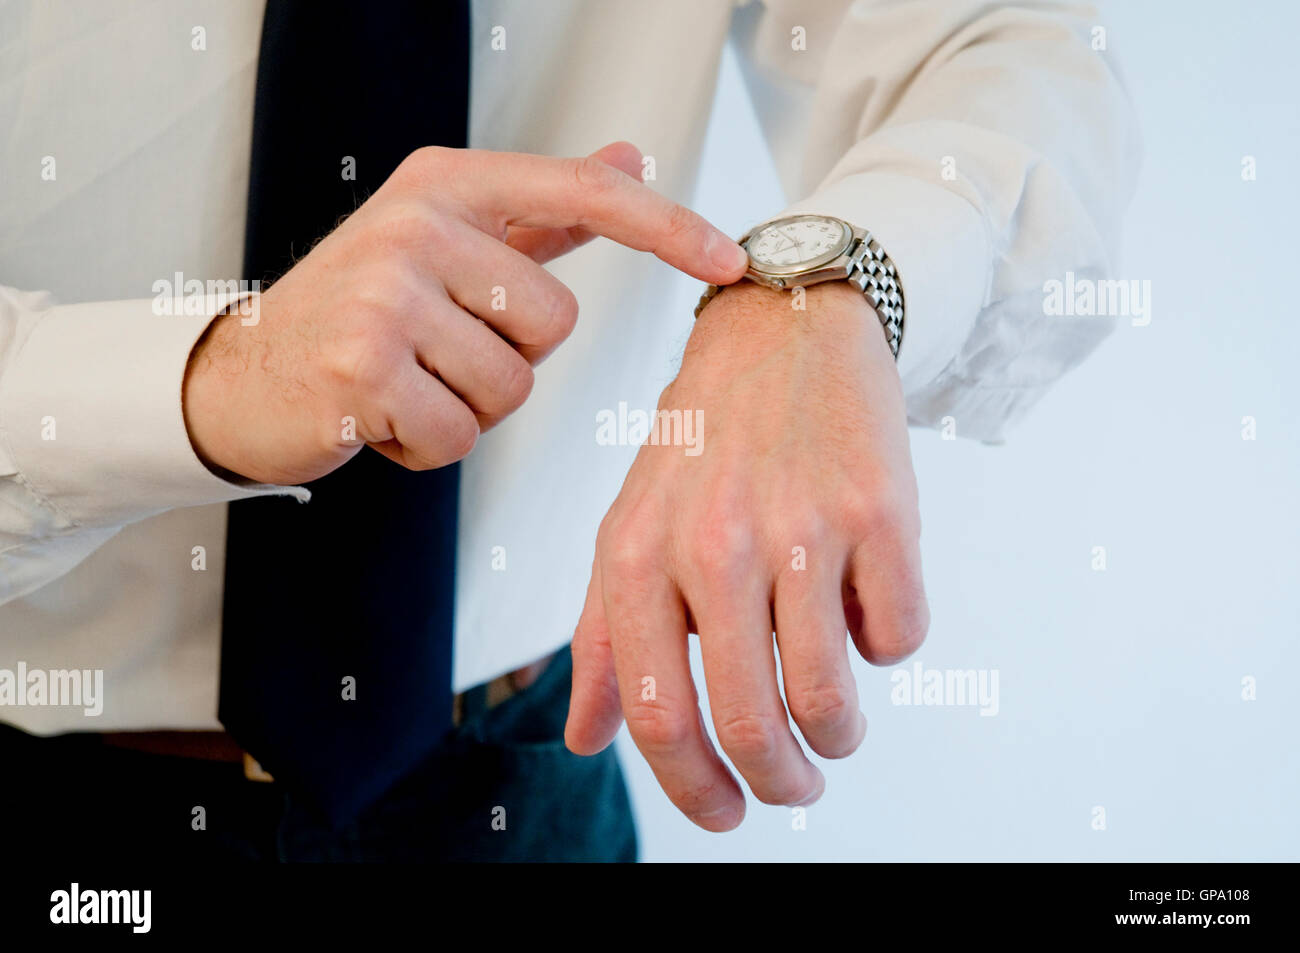 Man's hand pointing his watch. - Stock Image